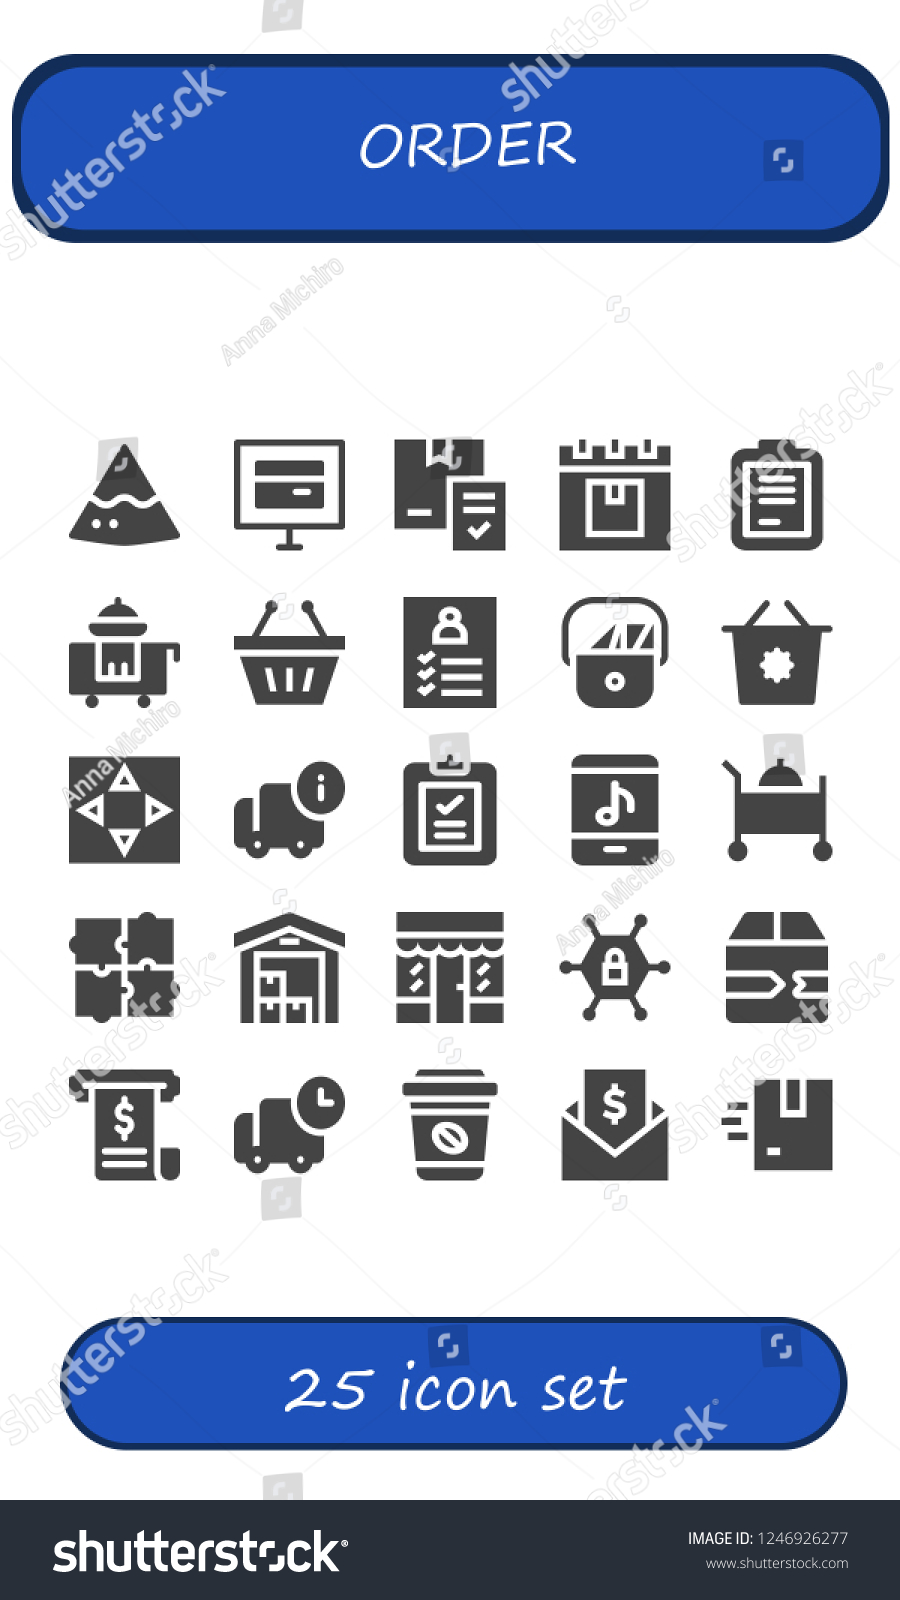 Online Pack Vector Icons Pack 25 Filled Order Stock Vector Royalty Free